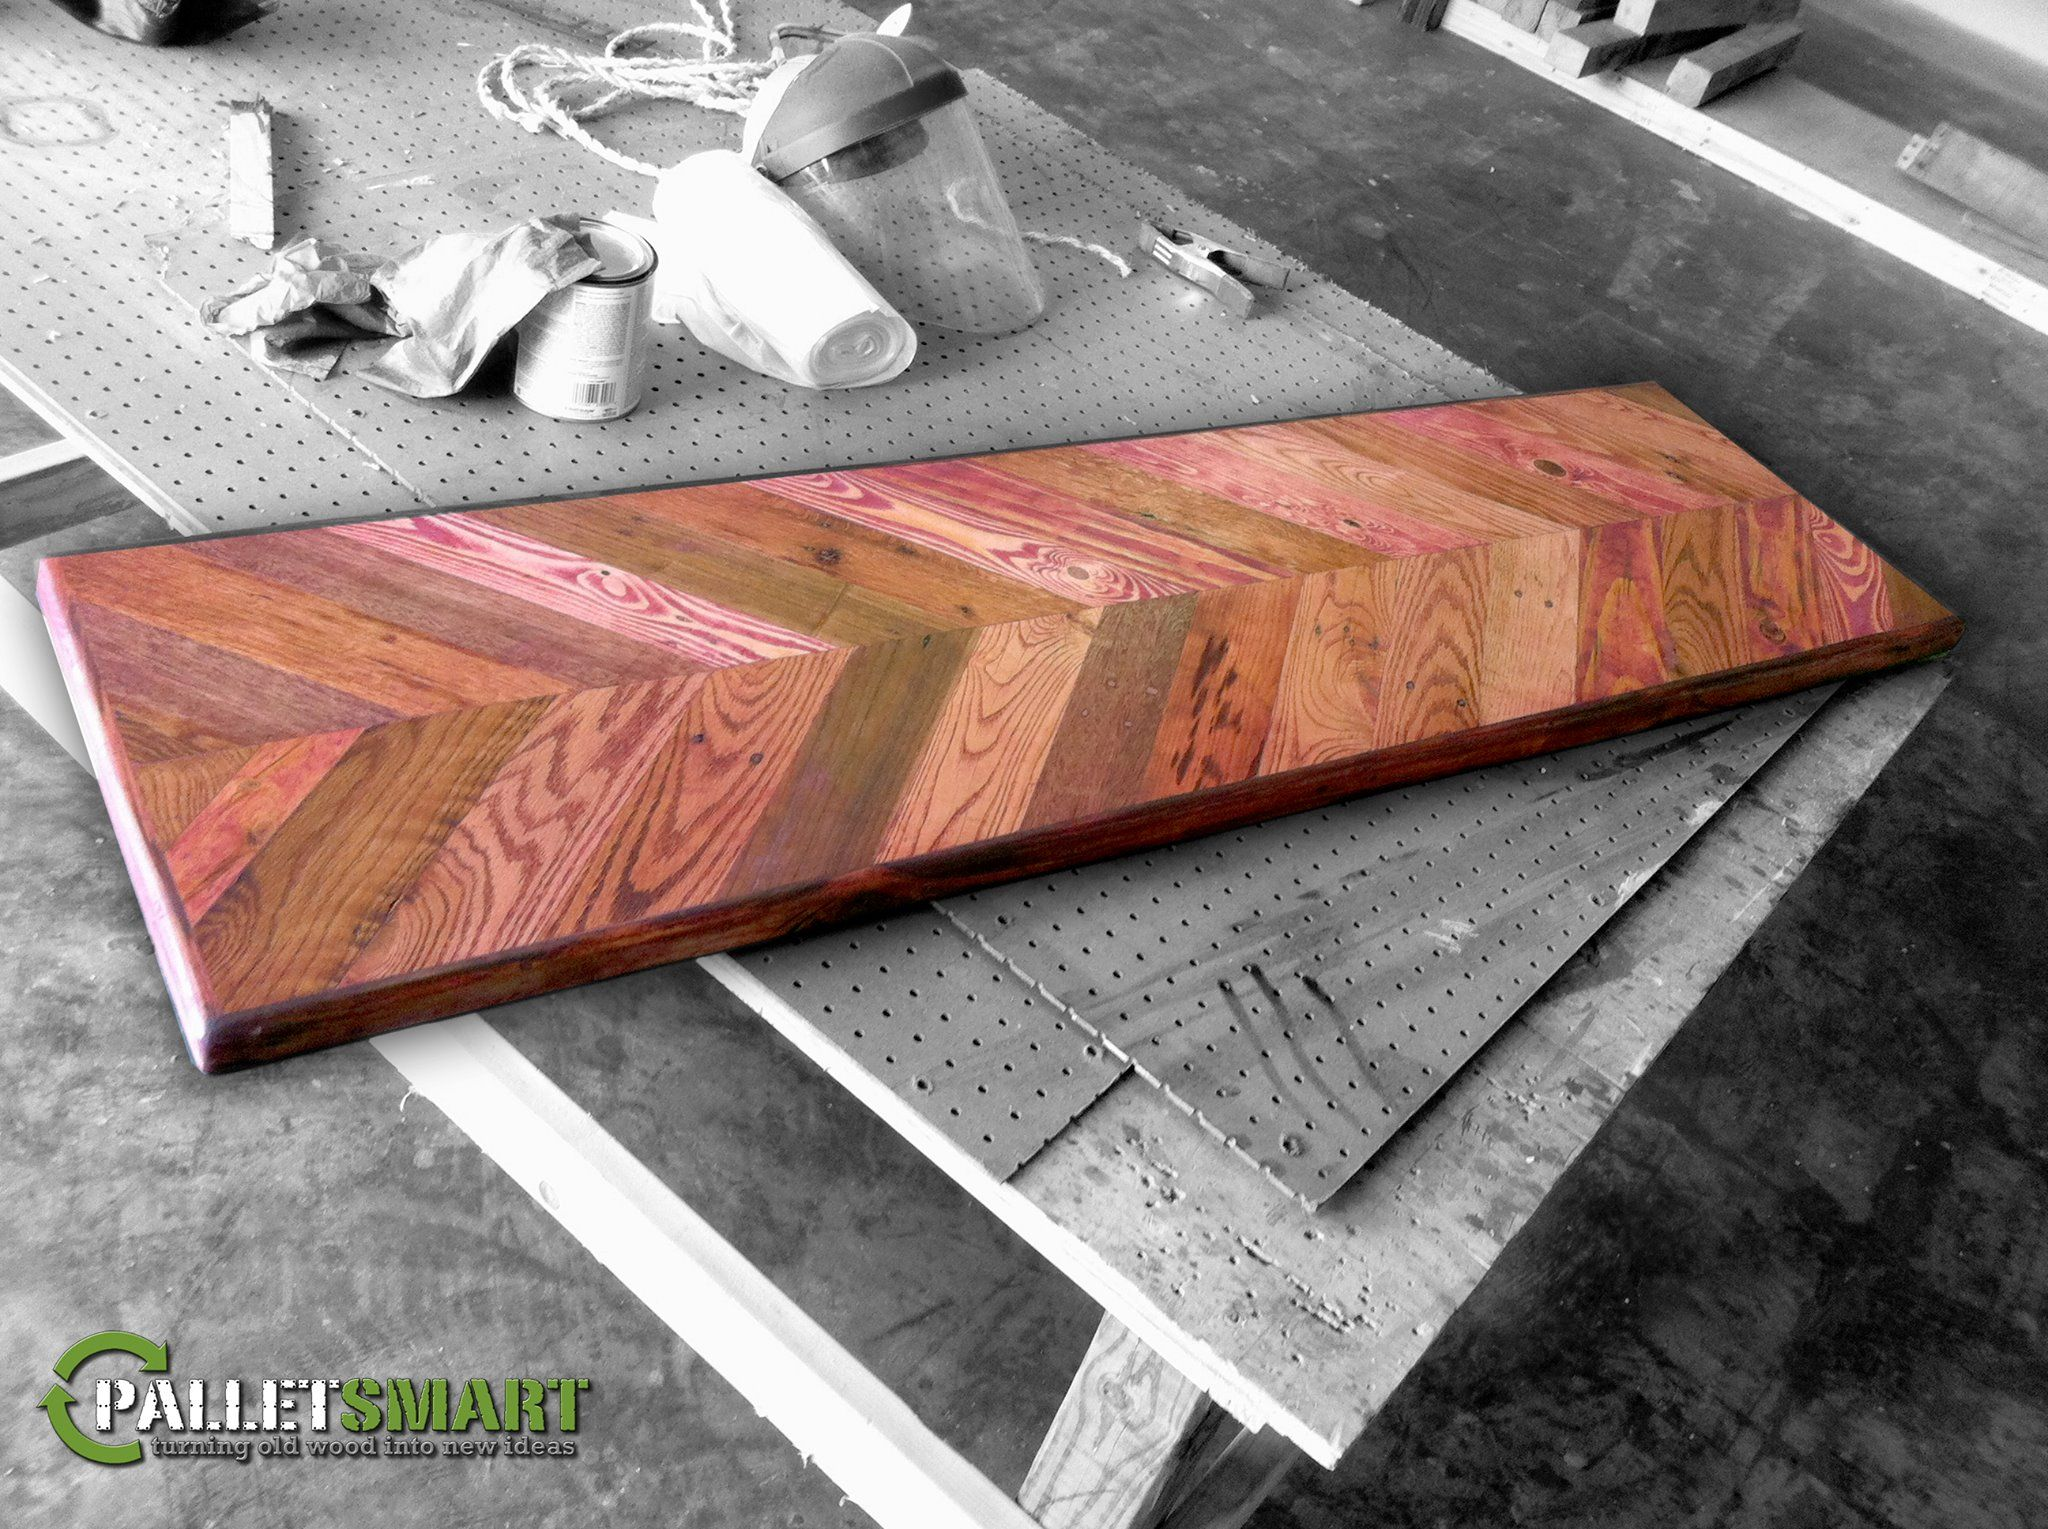 repurposed pallet wood chevron design table top with a cherry stain rh pinterest com